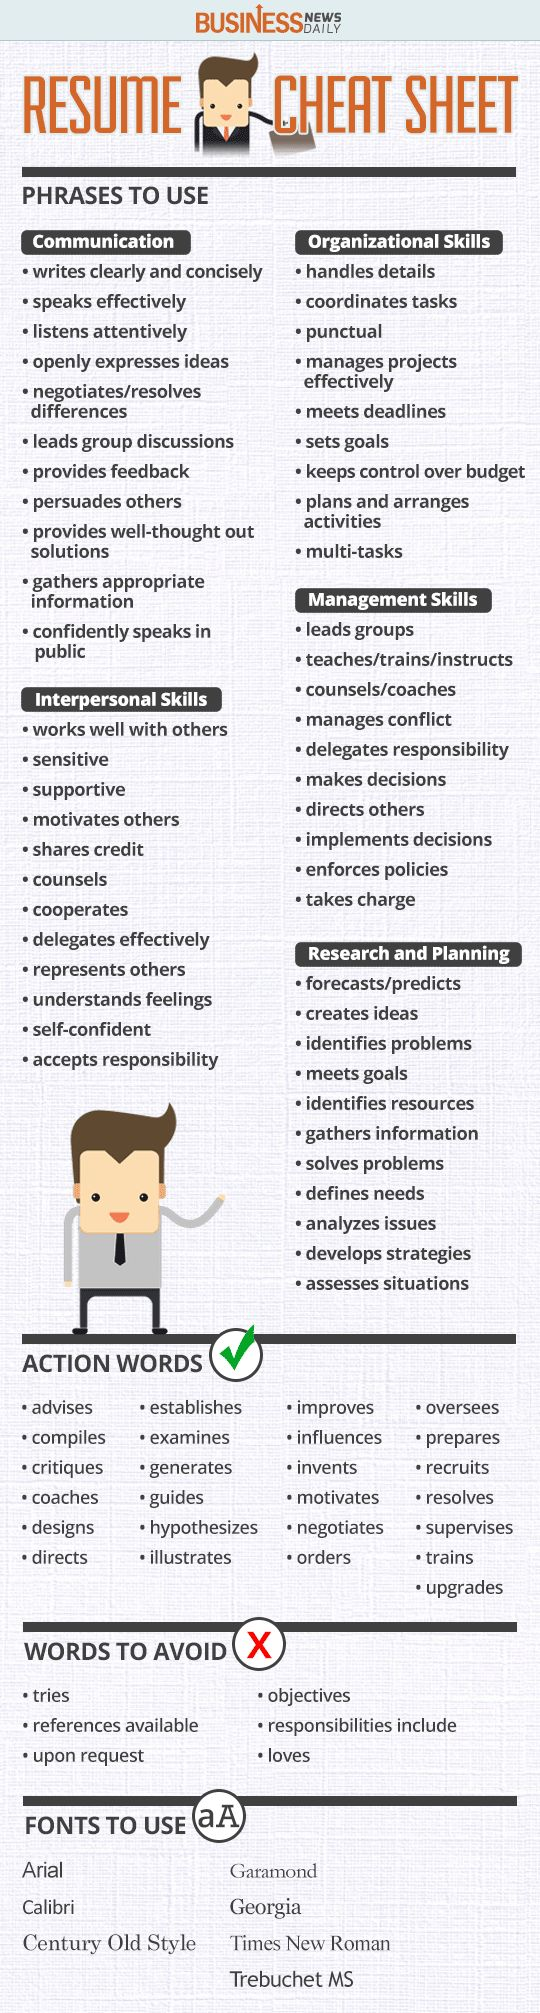 Opposenewapstandardsus  Winning  Ideas About Resume On Pinterest  Cv Format Resume Cv And  With Fascinating Resume Cheat Sheet Infographic Andrews Almost Done With A Complete Unit On Employment Which With Amusing Personal Banker Resume Also Top Rated Resume Writing Services In Addition Academic Resume Template And Resume Examples For Highschool Students As Well As Free Resume Builder Download Additionally Got Resume Builder From Pinterestcom With Opposenewapstandardsus  Fascinating  Ideas About Resume On Pinterest  Cv Format Resume Cv And  With Amusing Resume Cheat Sheet Infographic Andrews Almost Done With A Complete Unit On Employment Which And Winning Personal Banker Resume Also Top Rated Resume Writing Services In Addition Academic Resume Template From Pinterestcom